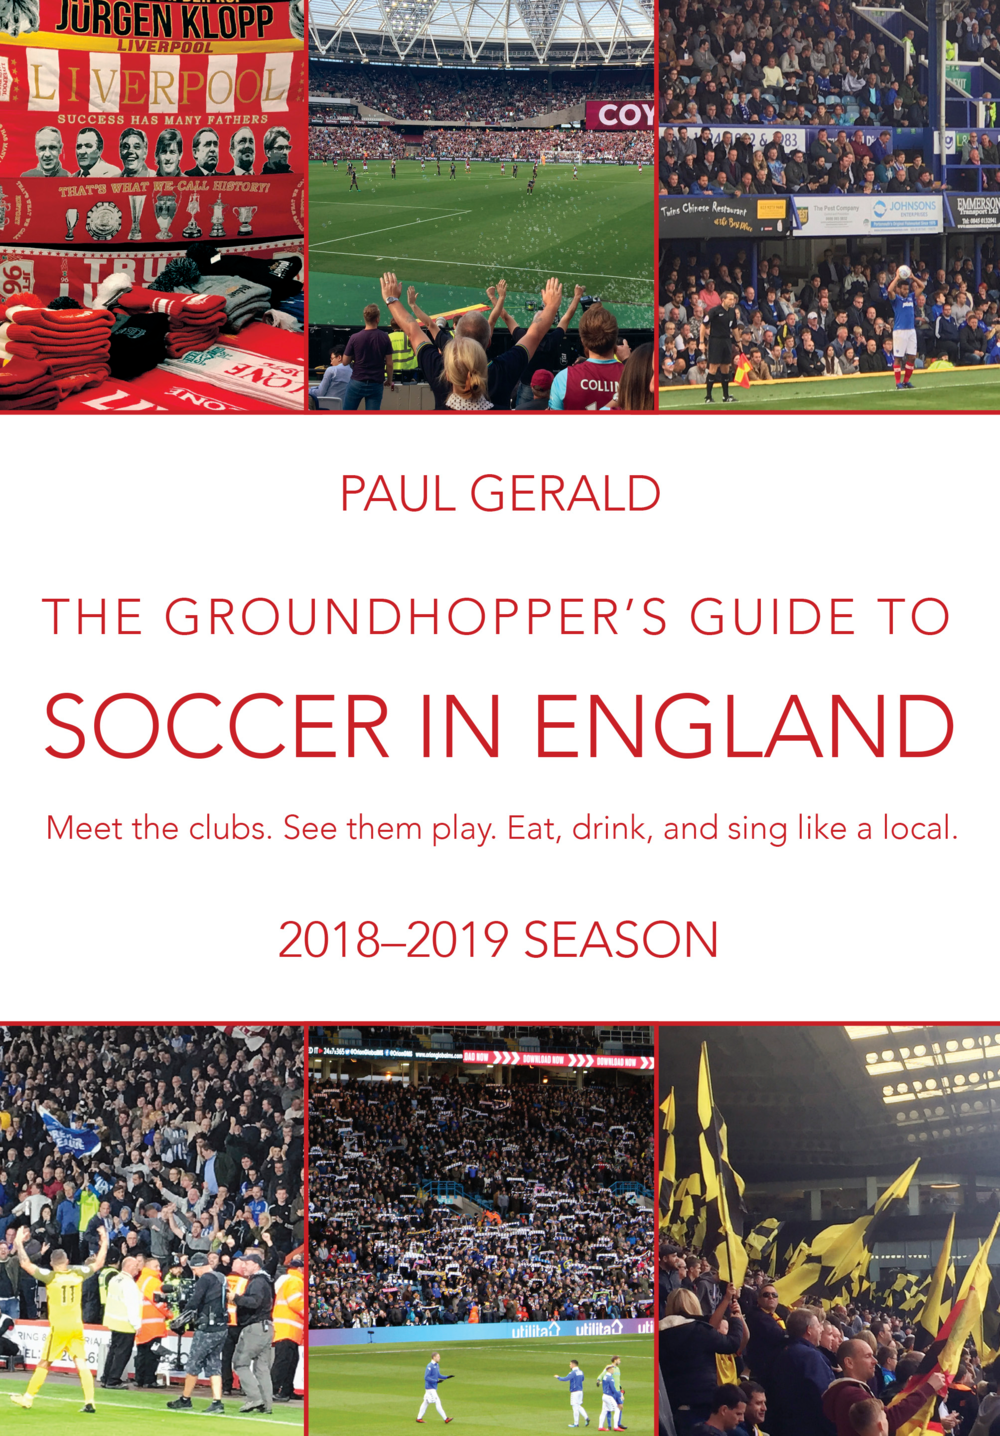 Soccer in England by Paul Gerald (Bacon & Eggs Press, August 2018)